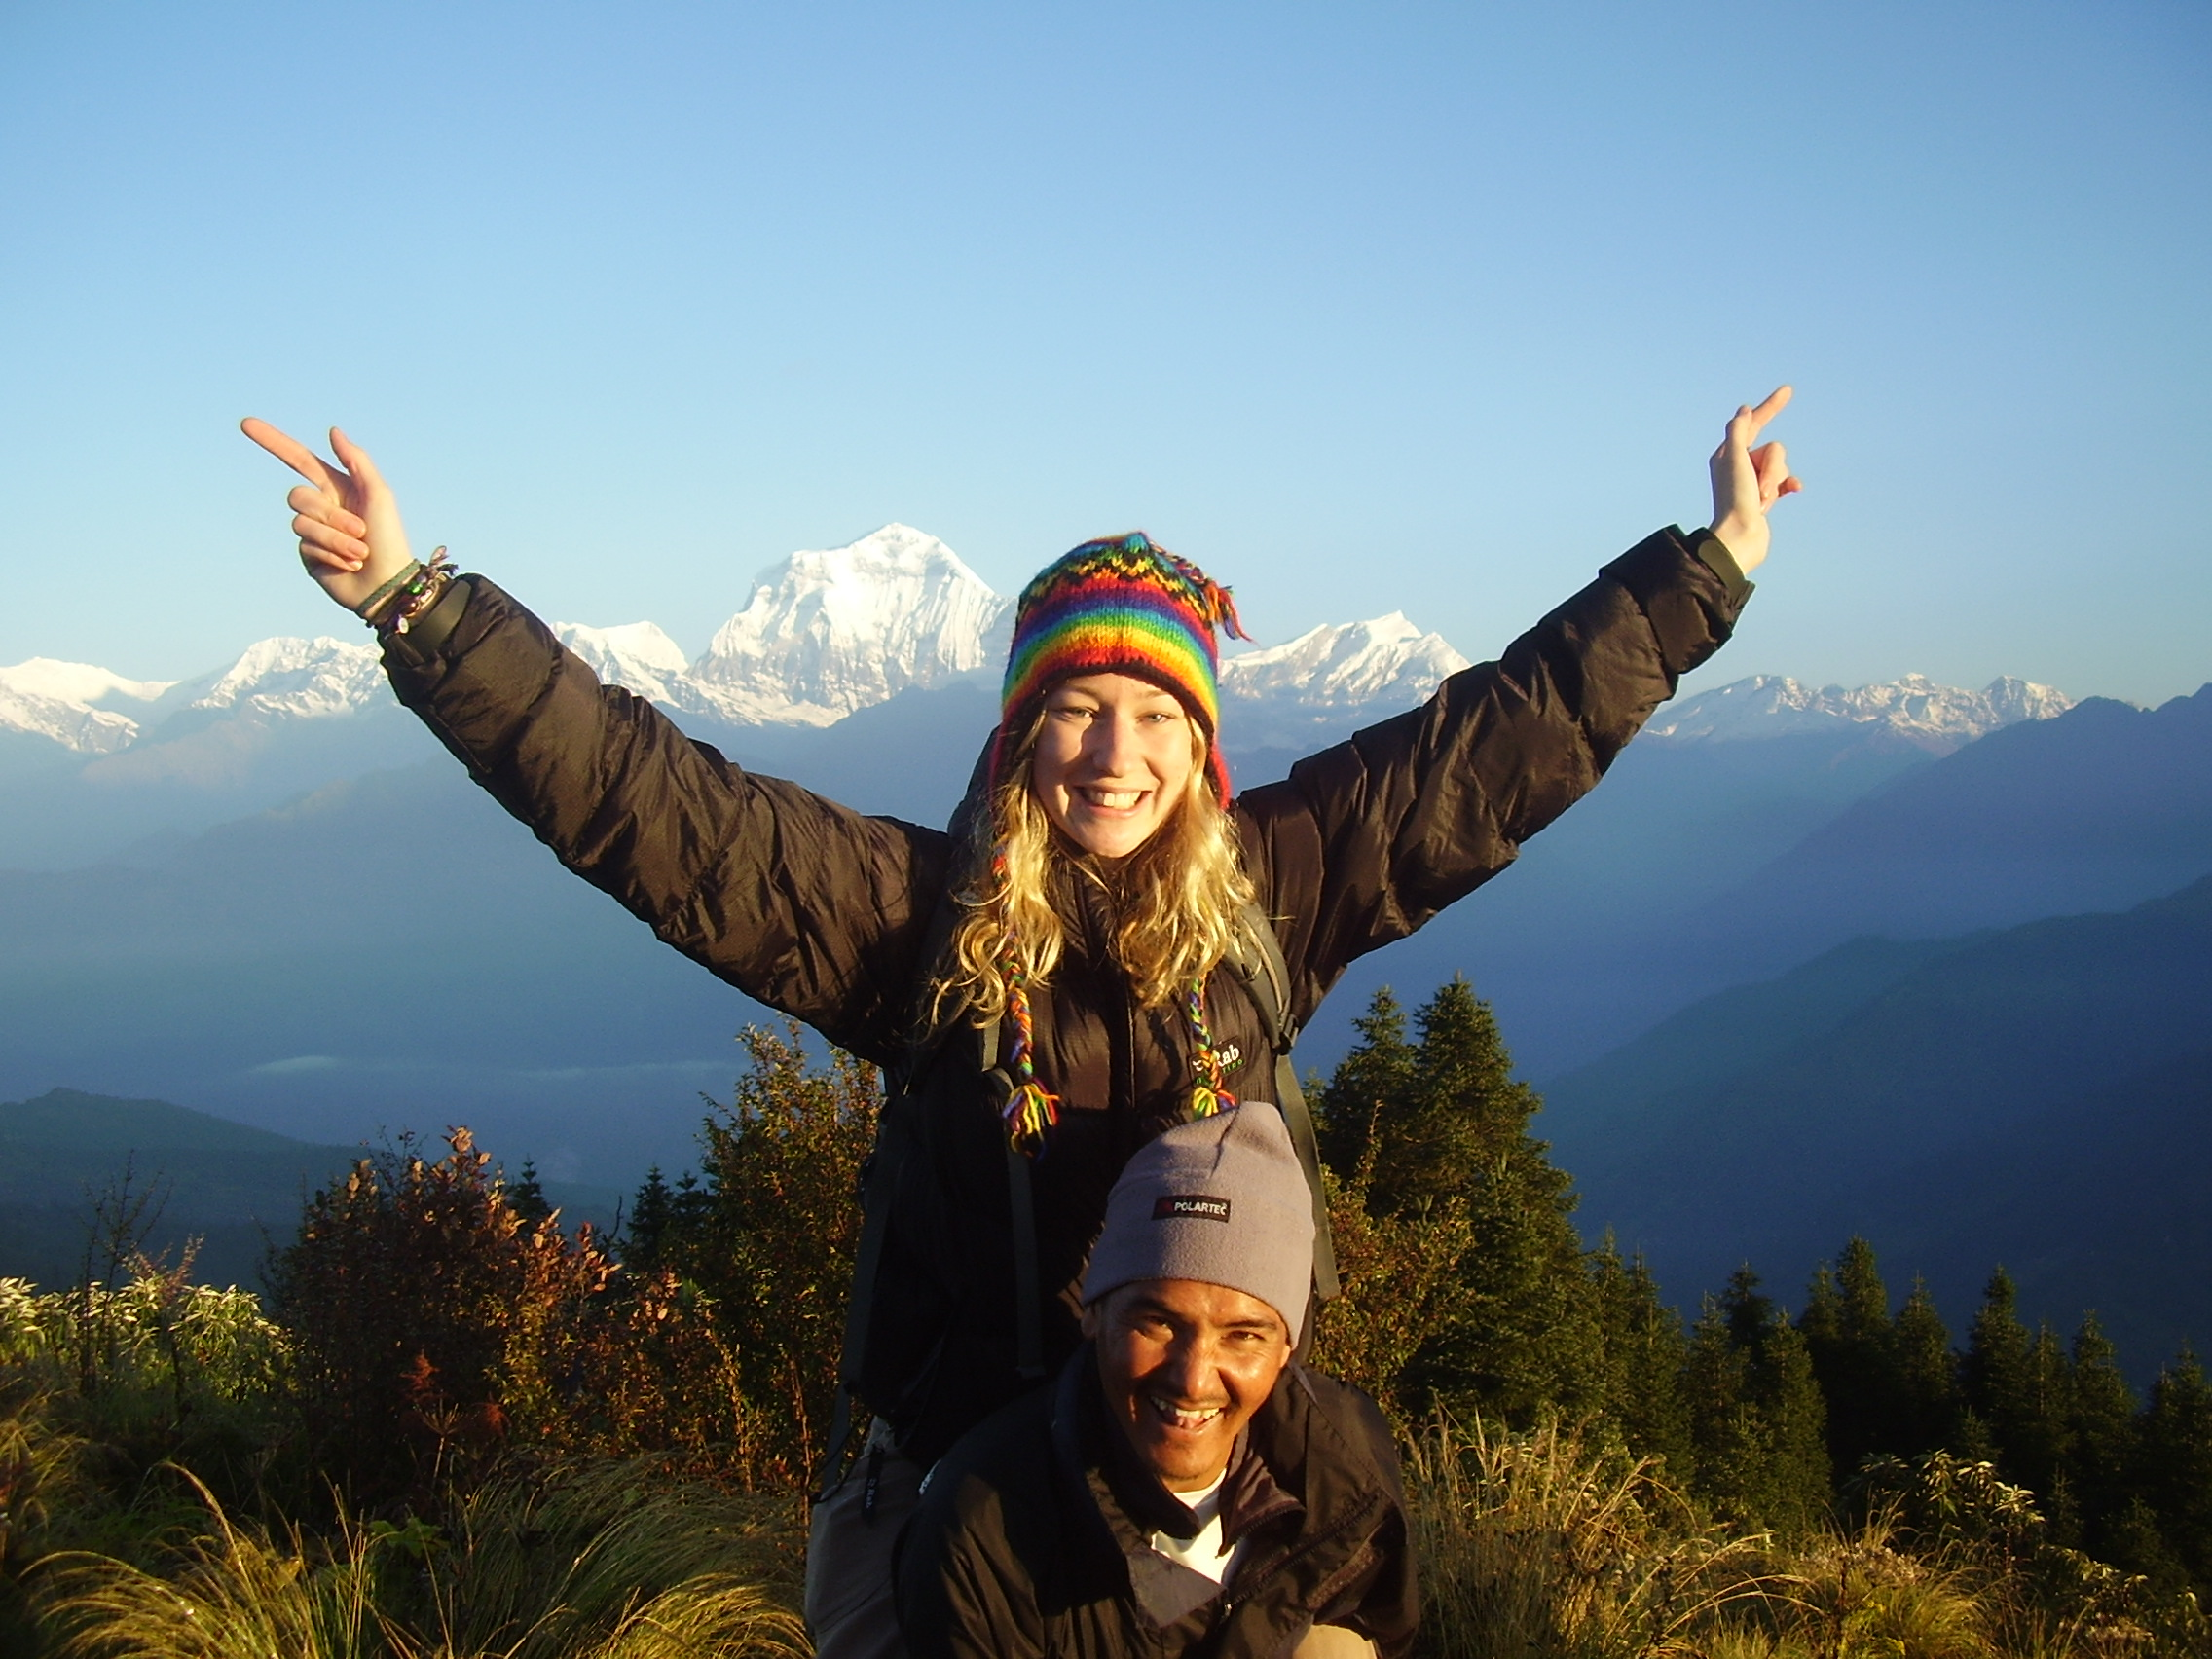 Poon Hill in the Himalayas, Nepal.